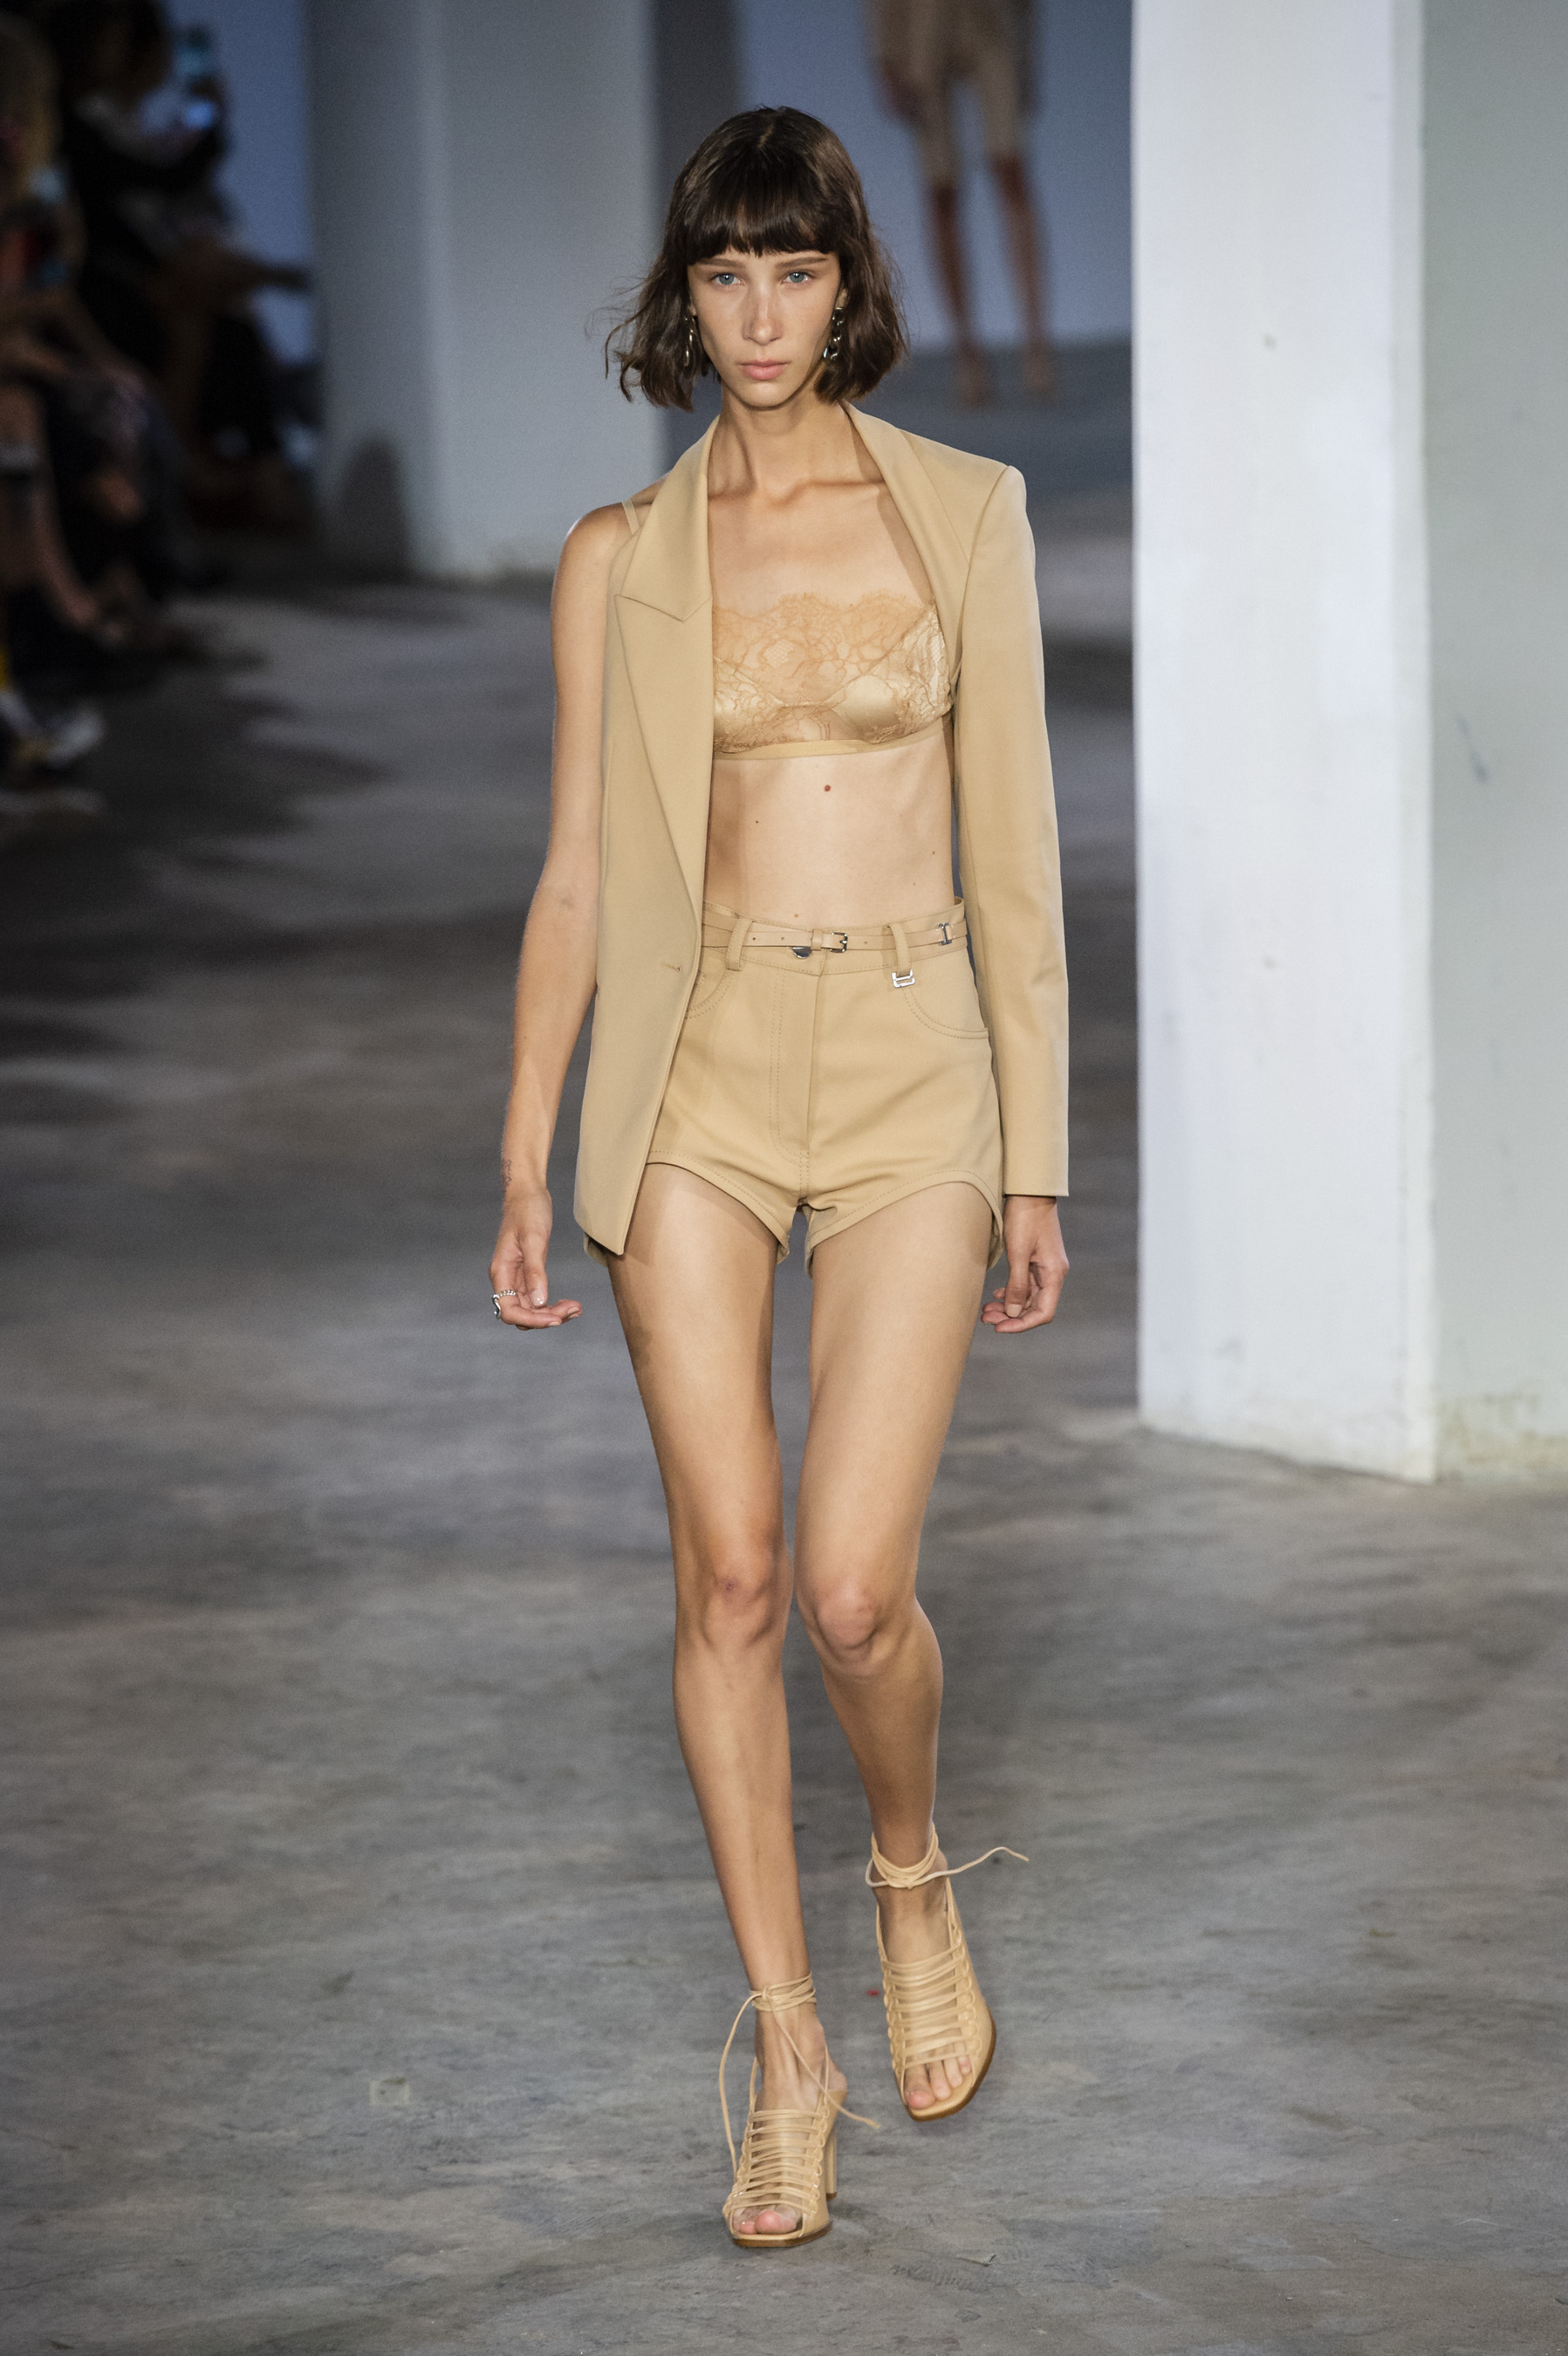 Dion Lee Runway One Sleeve Blazer in Nude Trace Lace Bandeau in Nude Mini Shorts in Nude Tie Up Sandals Spring 19 RTW